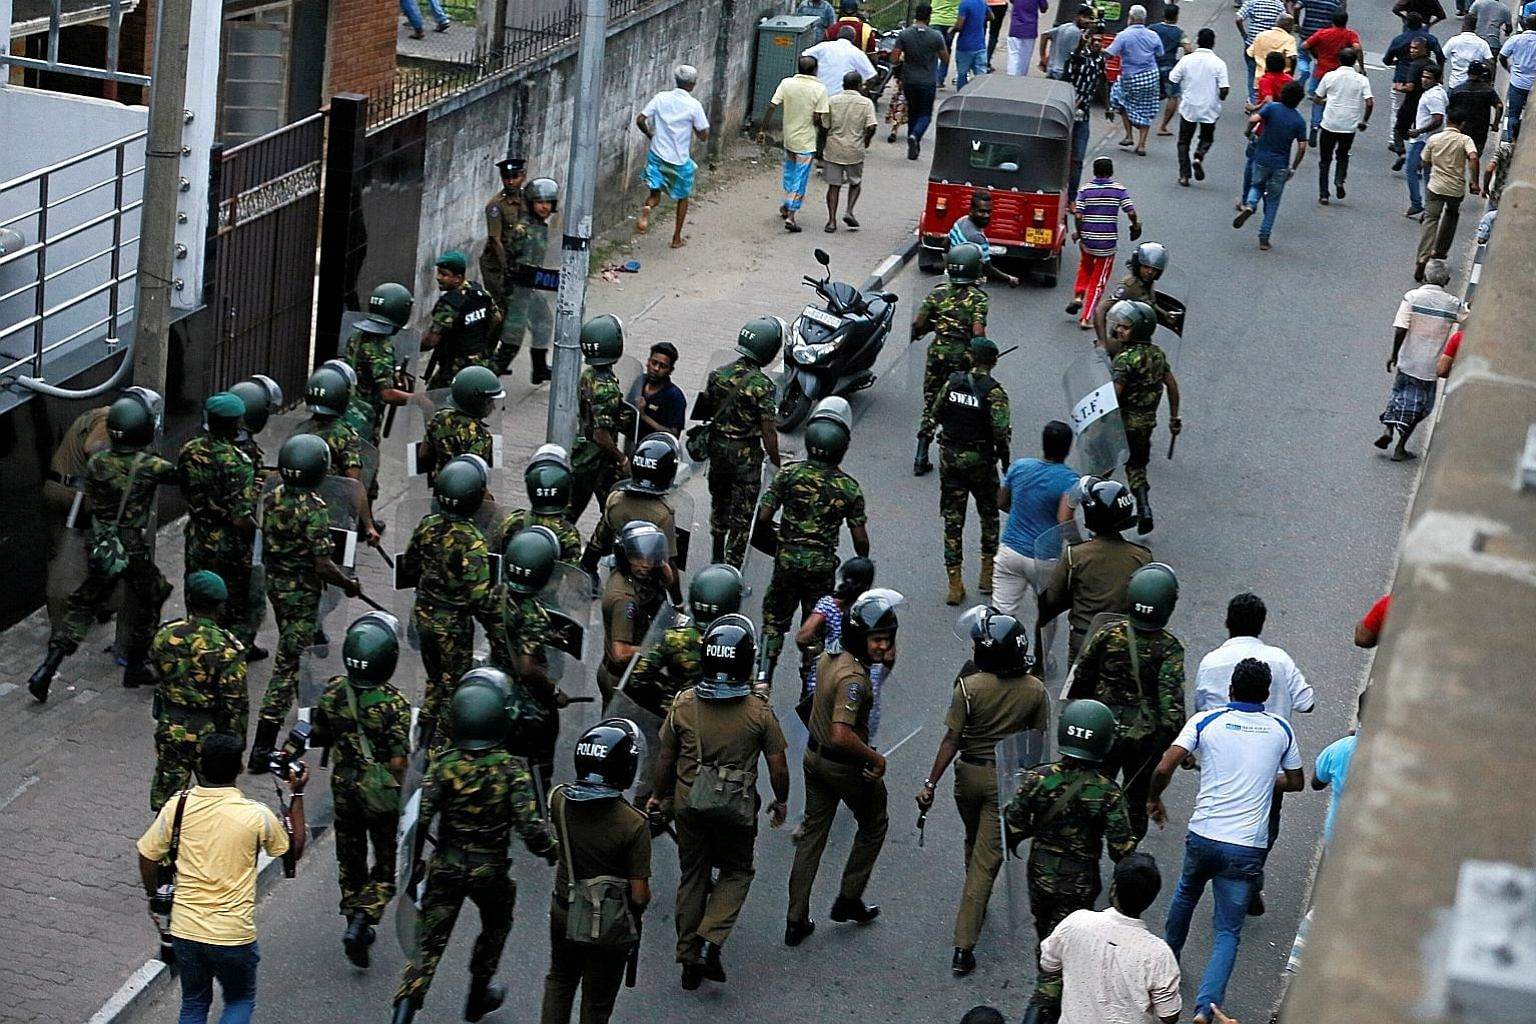 Members of Sri Lanka's Special Task Force and the police chasing away supporters of the country's newly-appointed Prime Minister Mahinda Rajapaksa after a security guard of sacked petroleum minister Arjuna Ranatunga shot and wounded three people in f